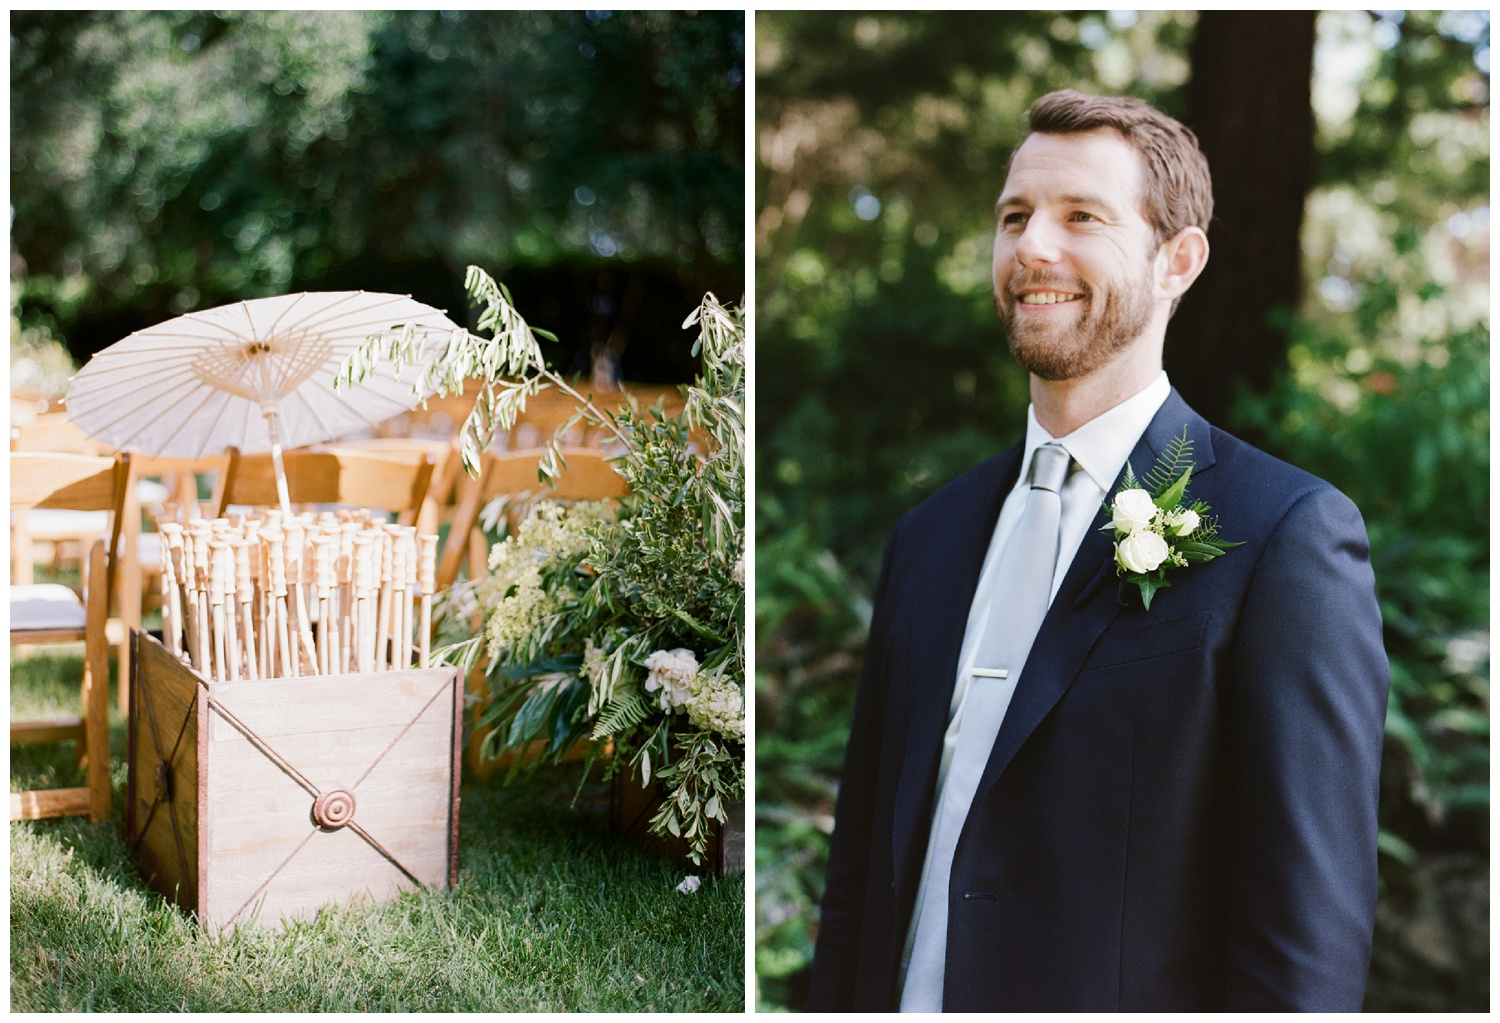 Parasols for guests at the ceremony space, the groom stands in a navy suit and grey tie; Sylvie Gil Photography